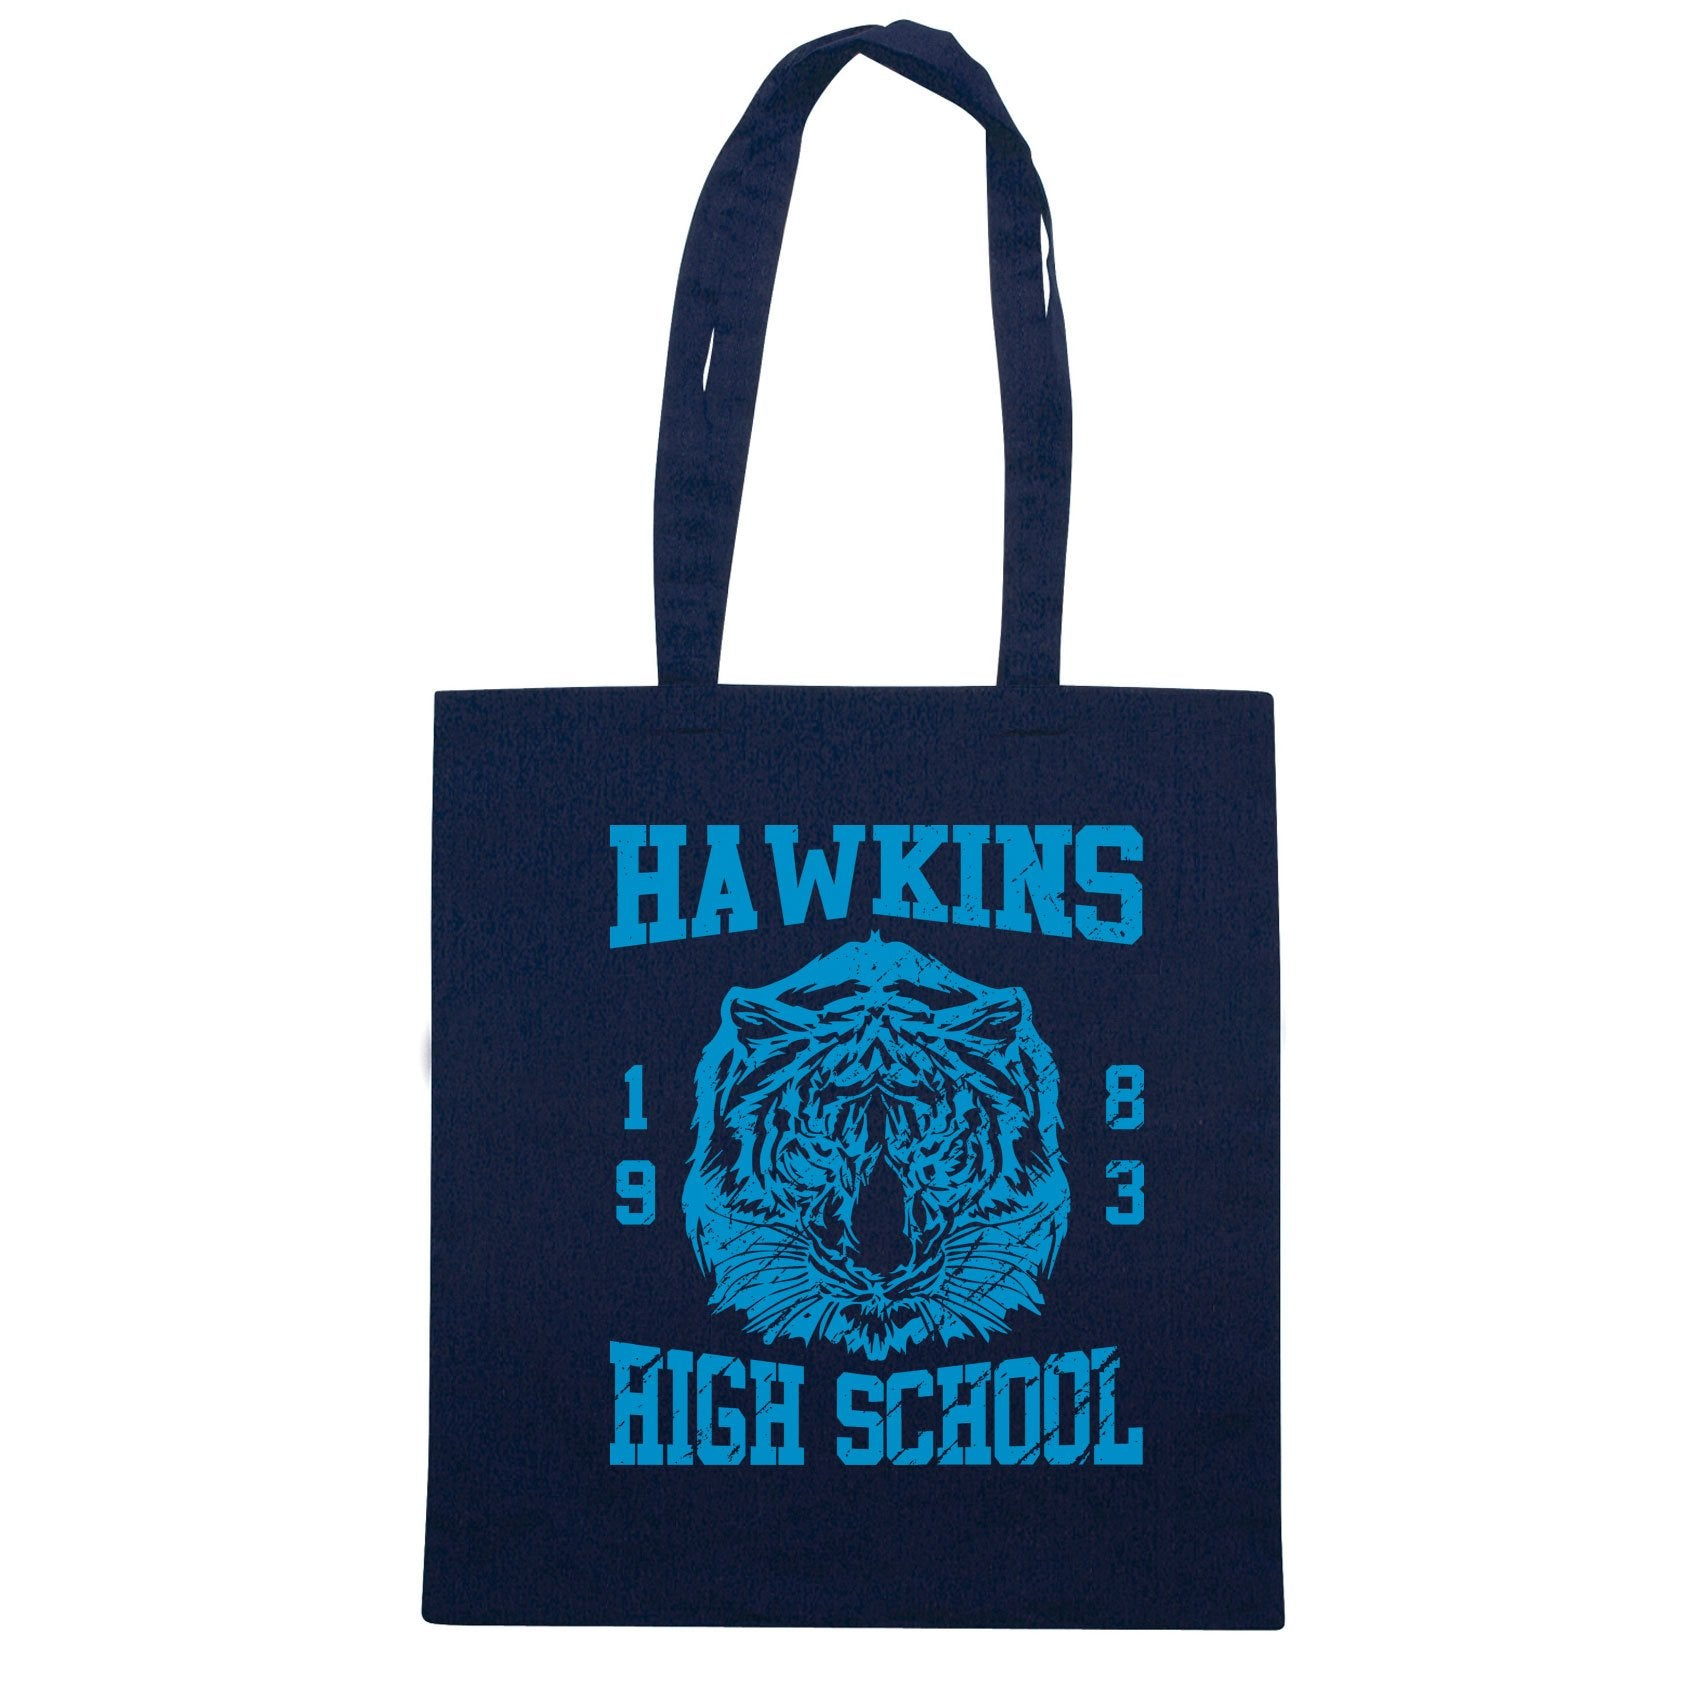 Borsa Hawkins High Shool Stranger Things - Blu navy - FILM Choose ur color